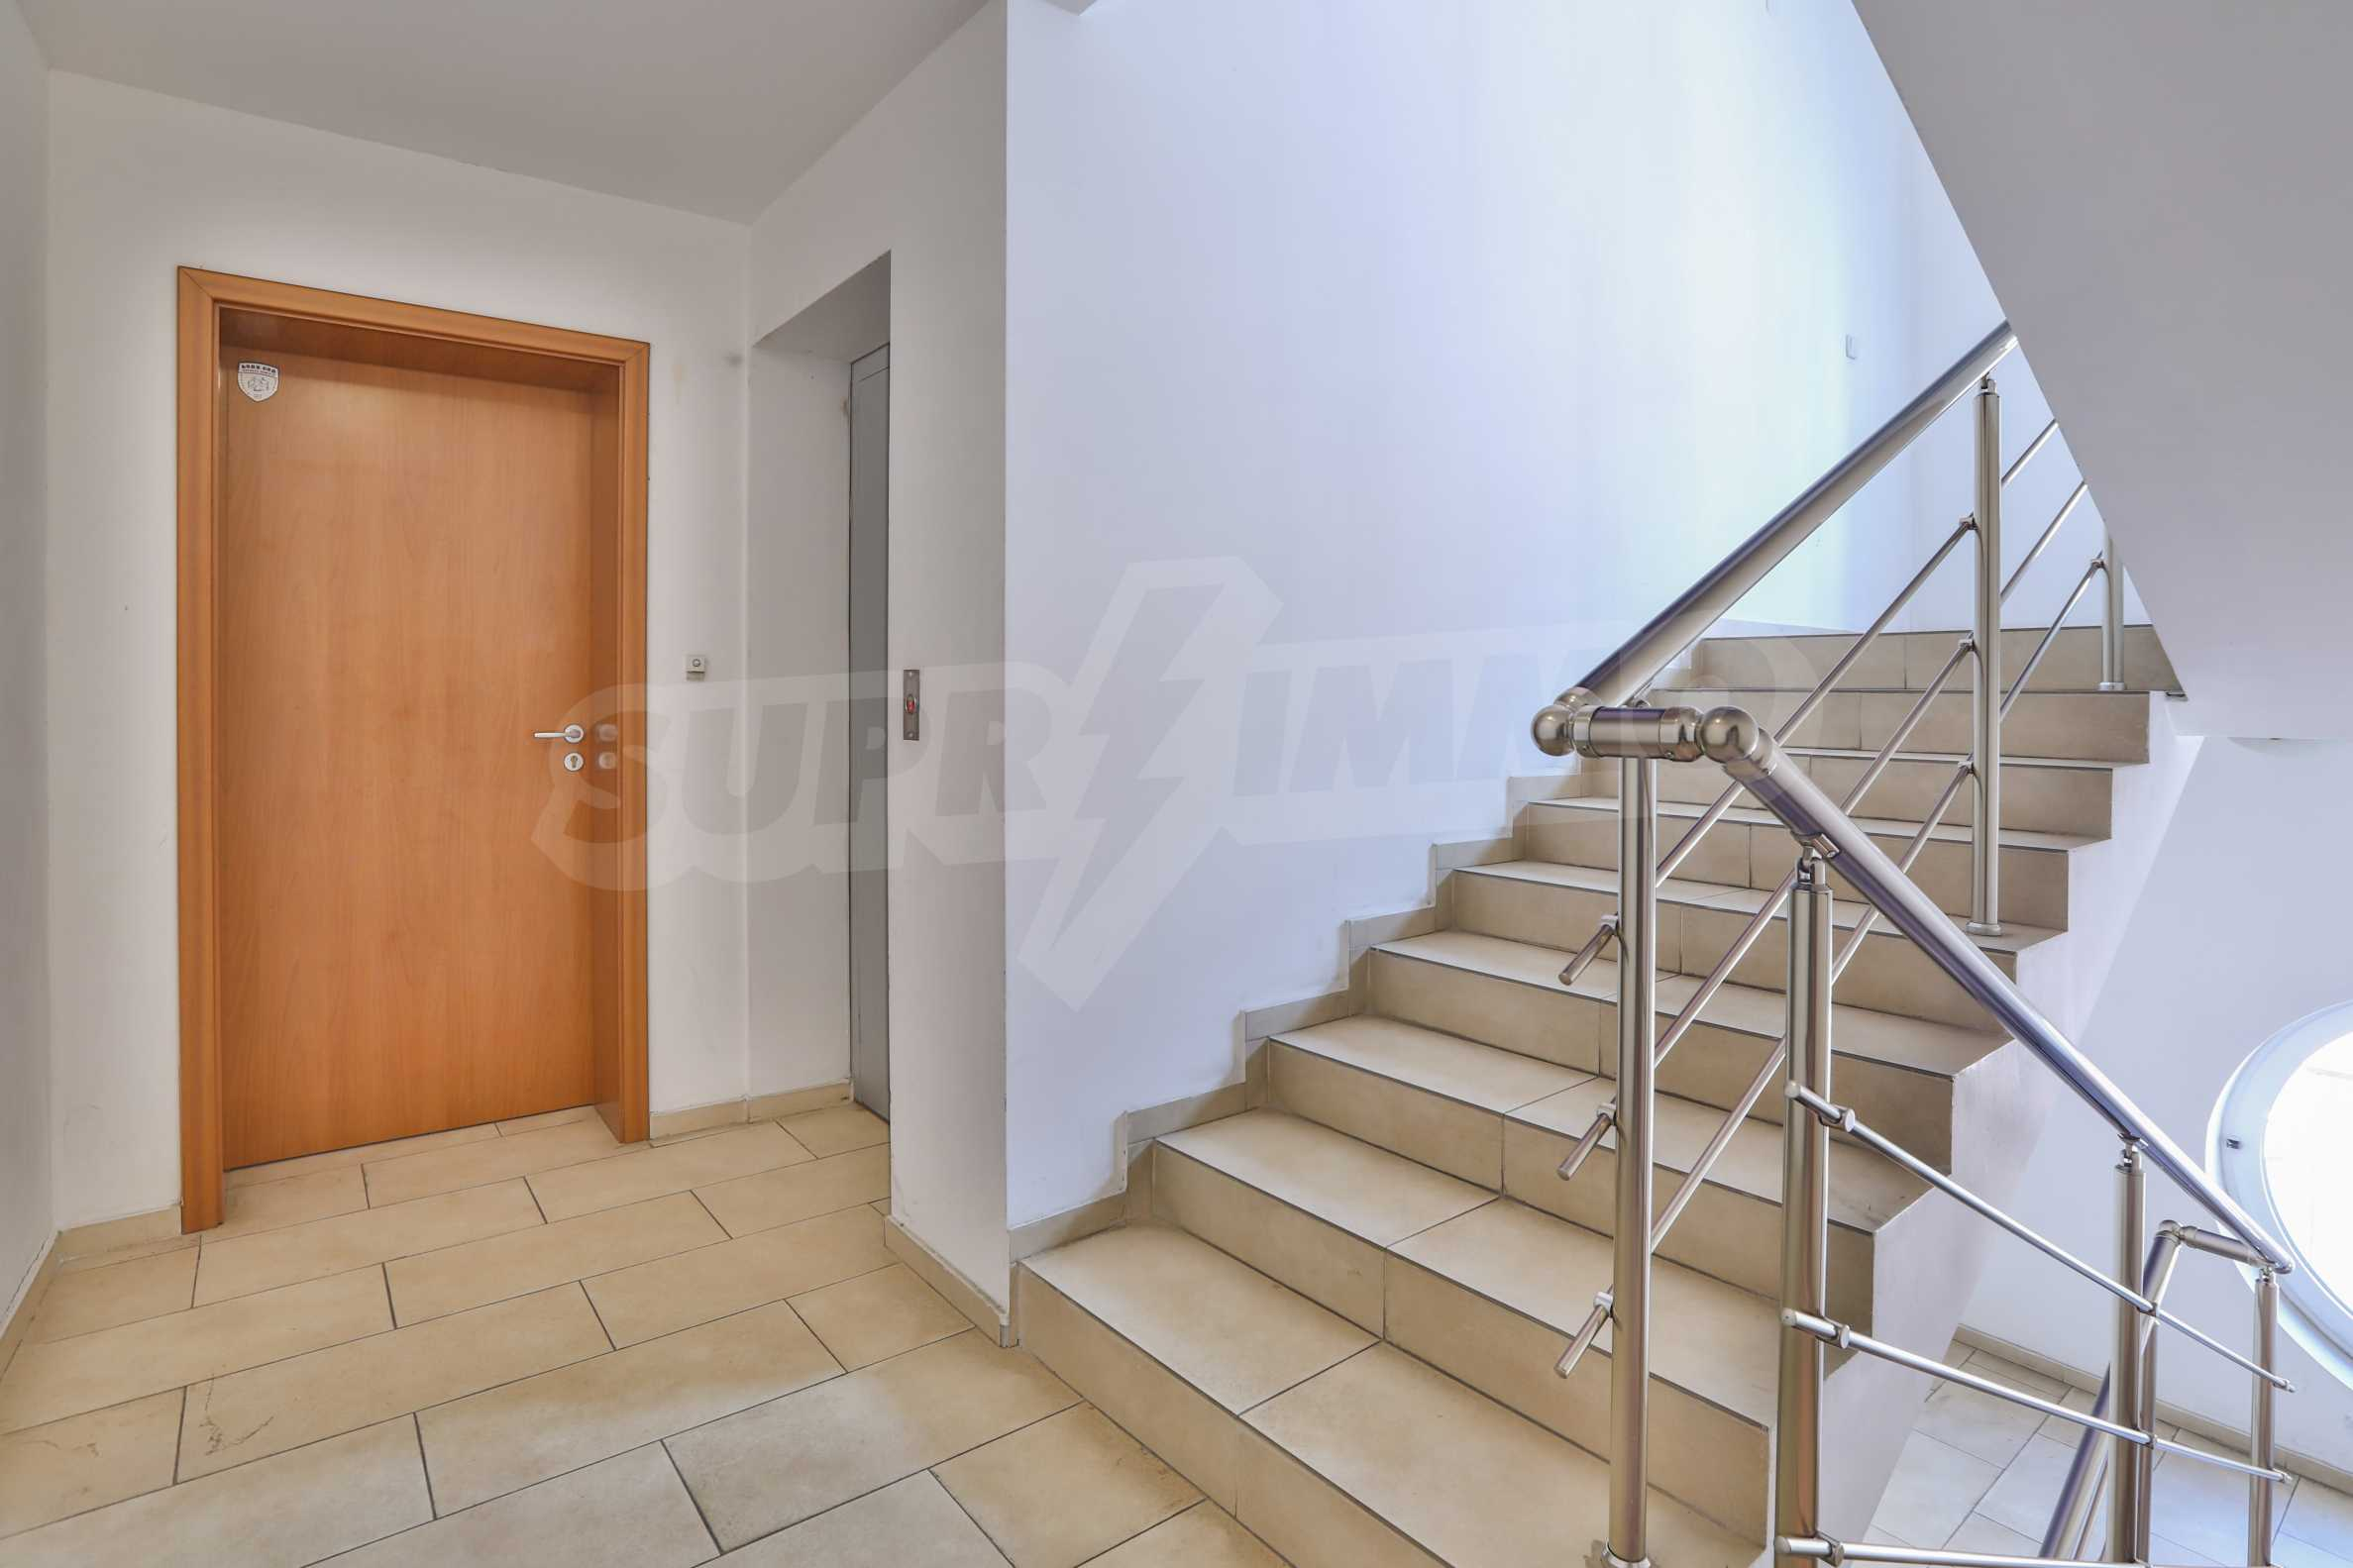 Two-bedroom apartment in the center with high rating on Airbnb 16